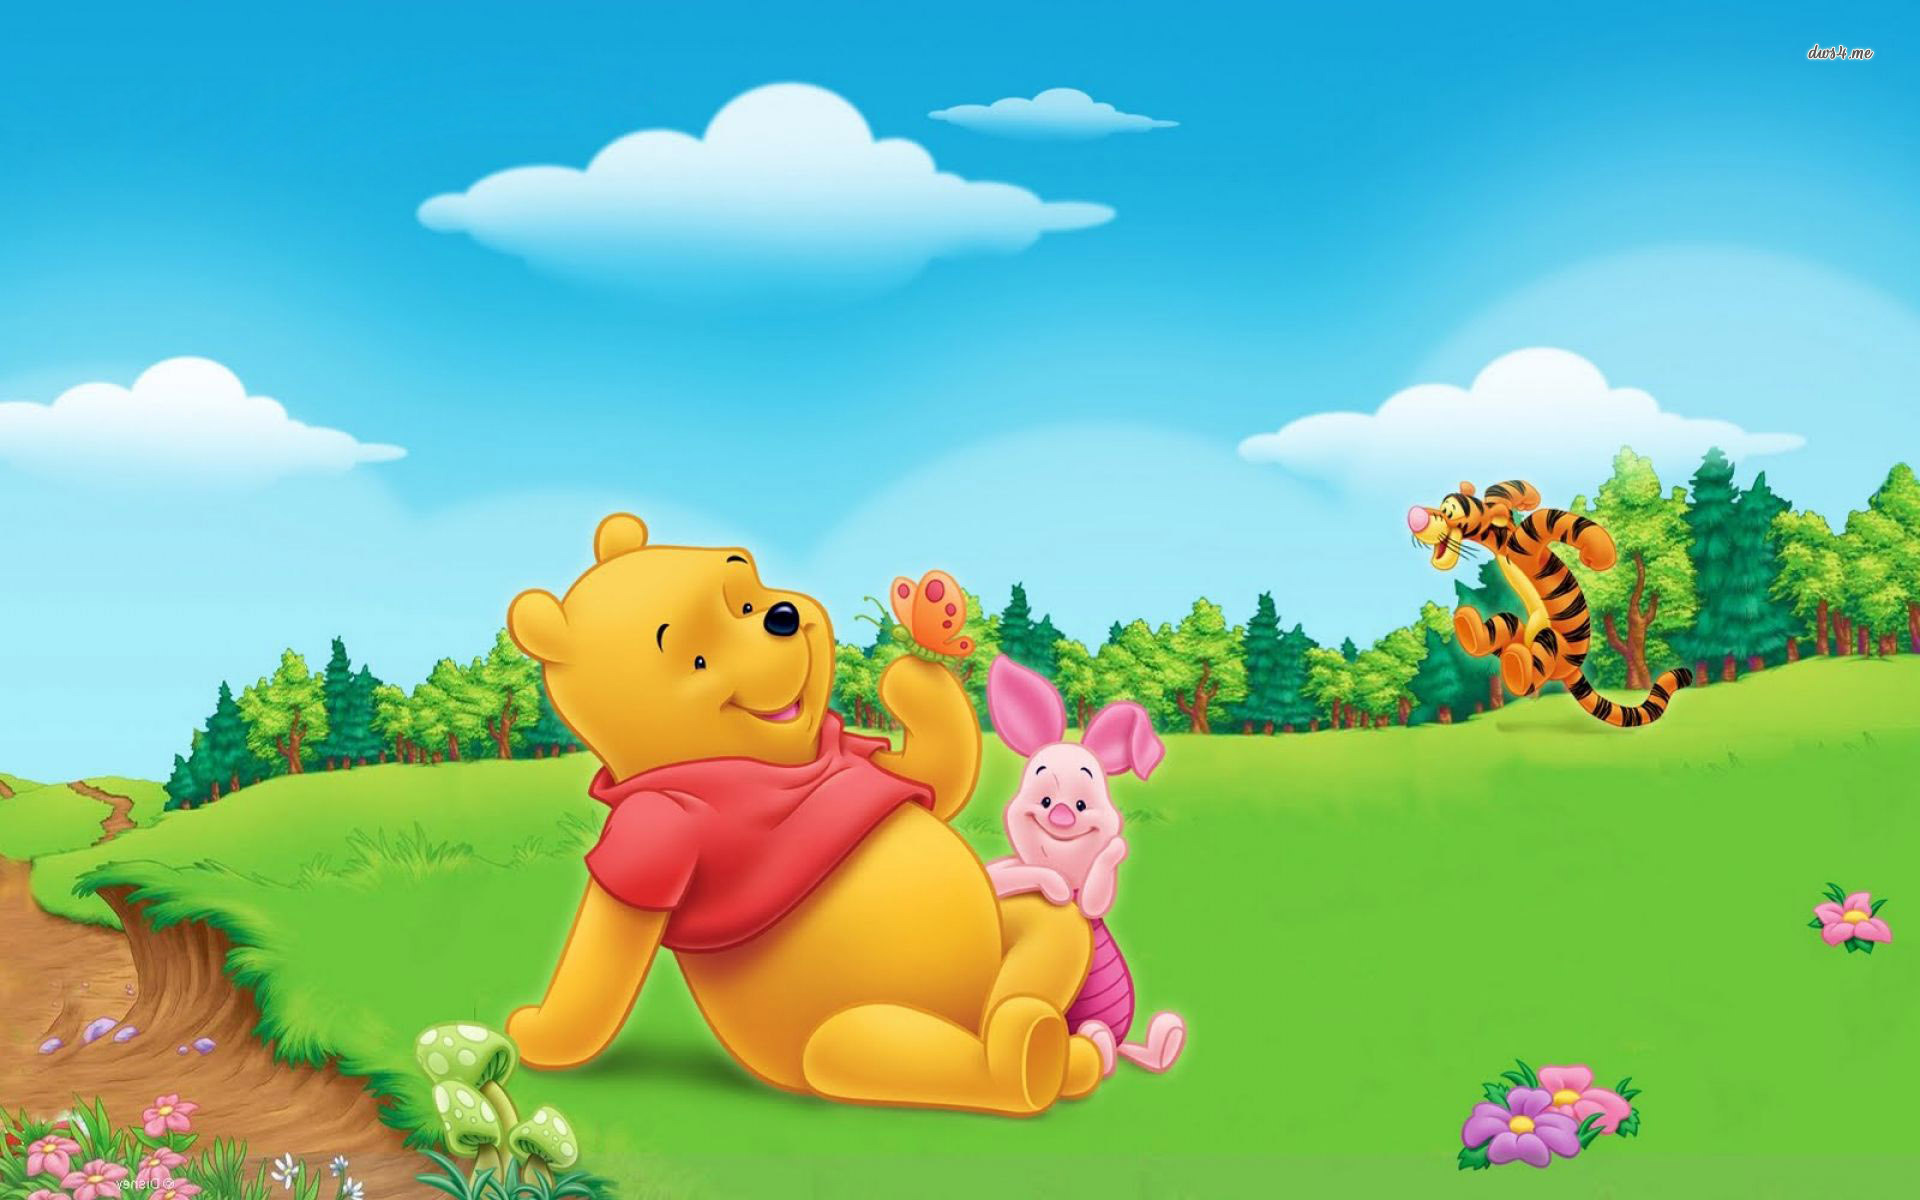 The Legend Of Zelda Wallpaper Hd Winnie The Pooh Backgrounds Pictures Images